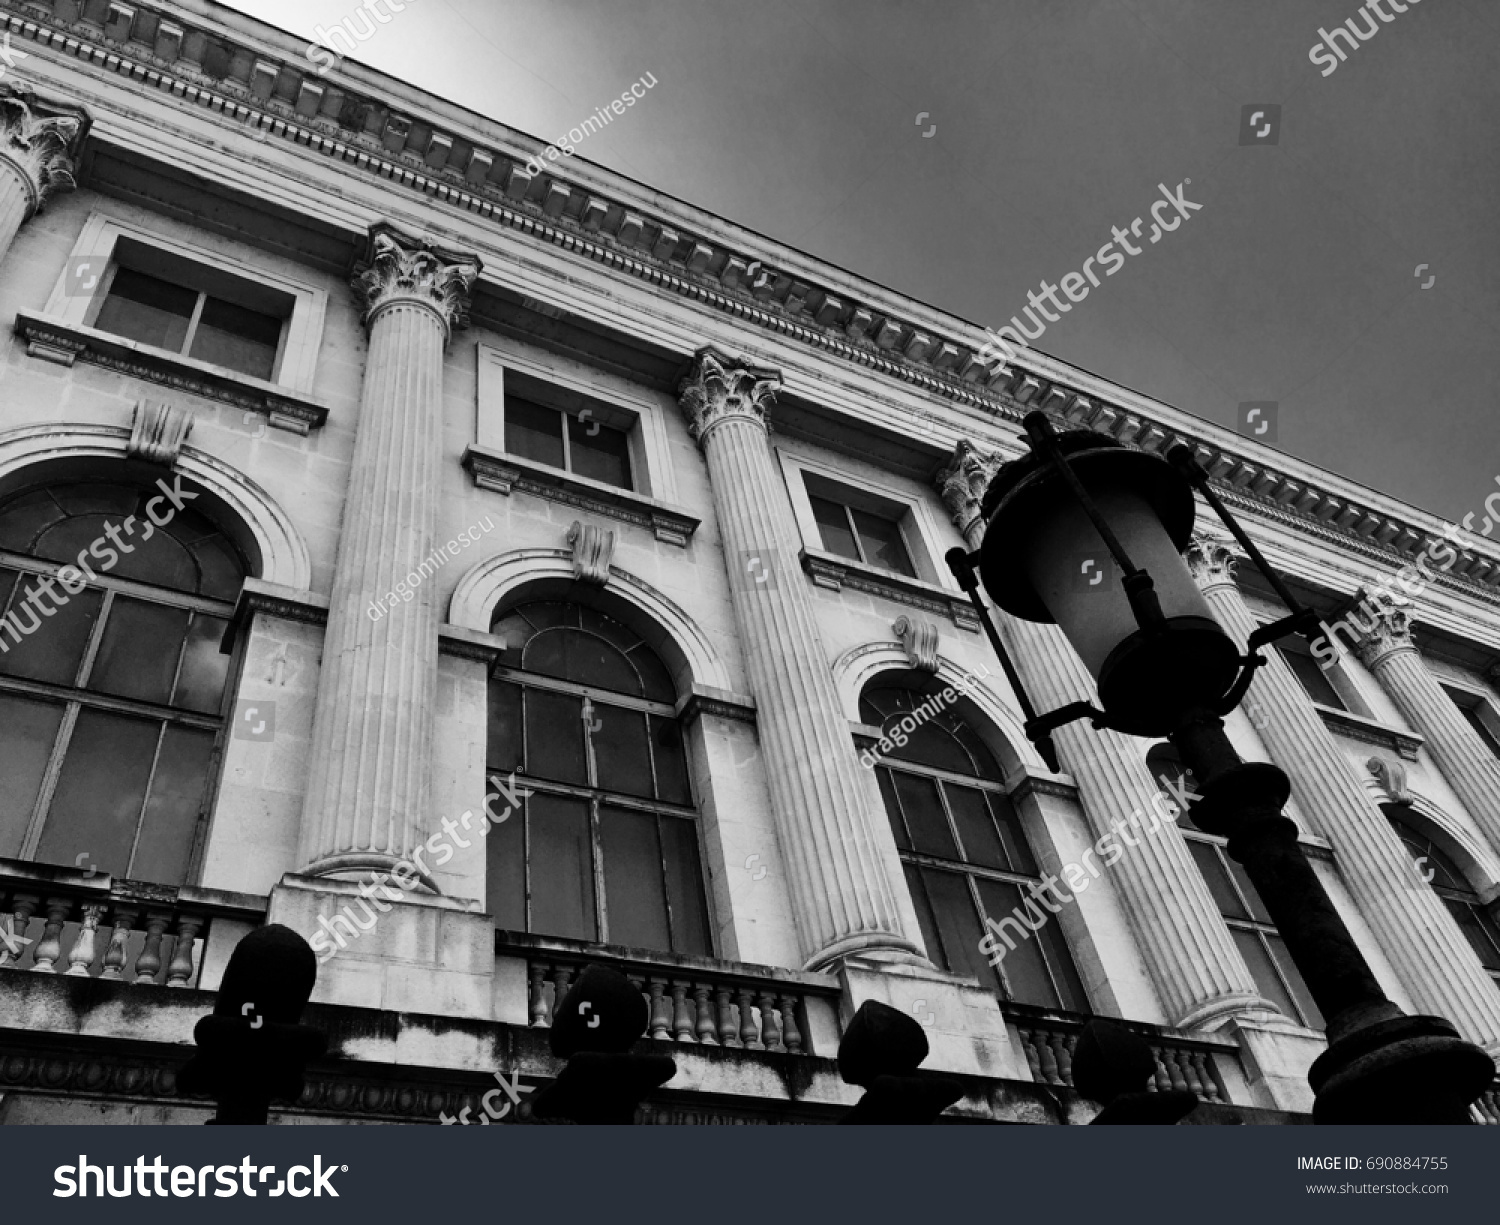 Black and white photography architectural architecture detail historical building with street lamp